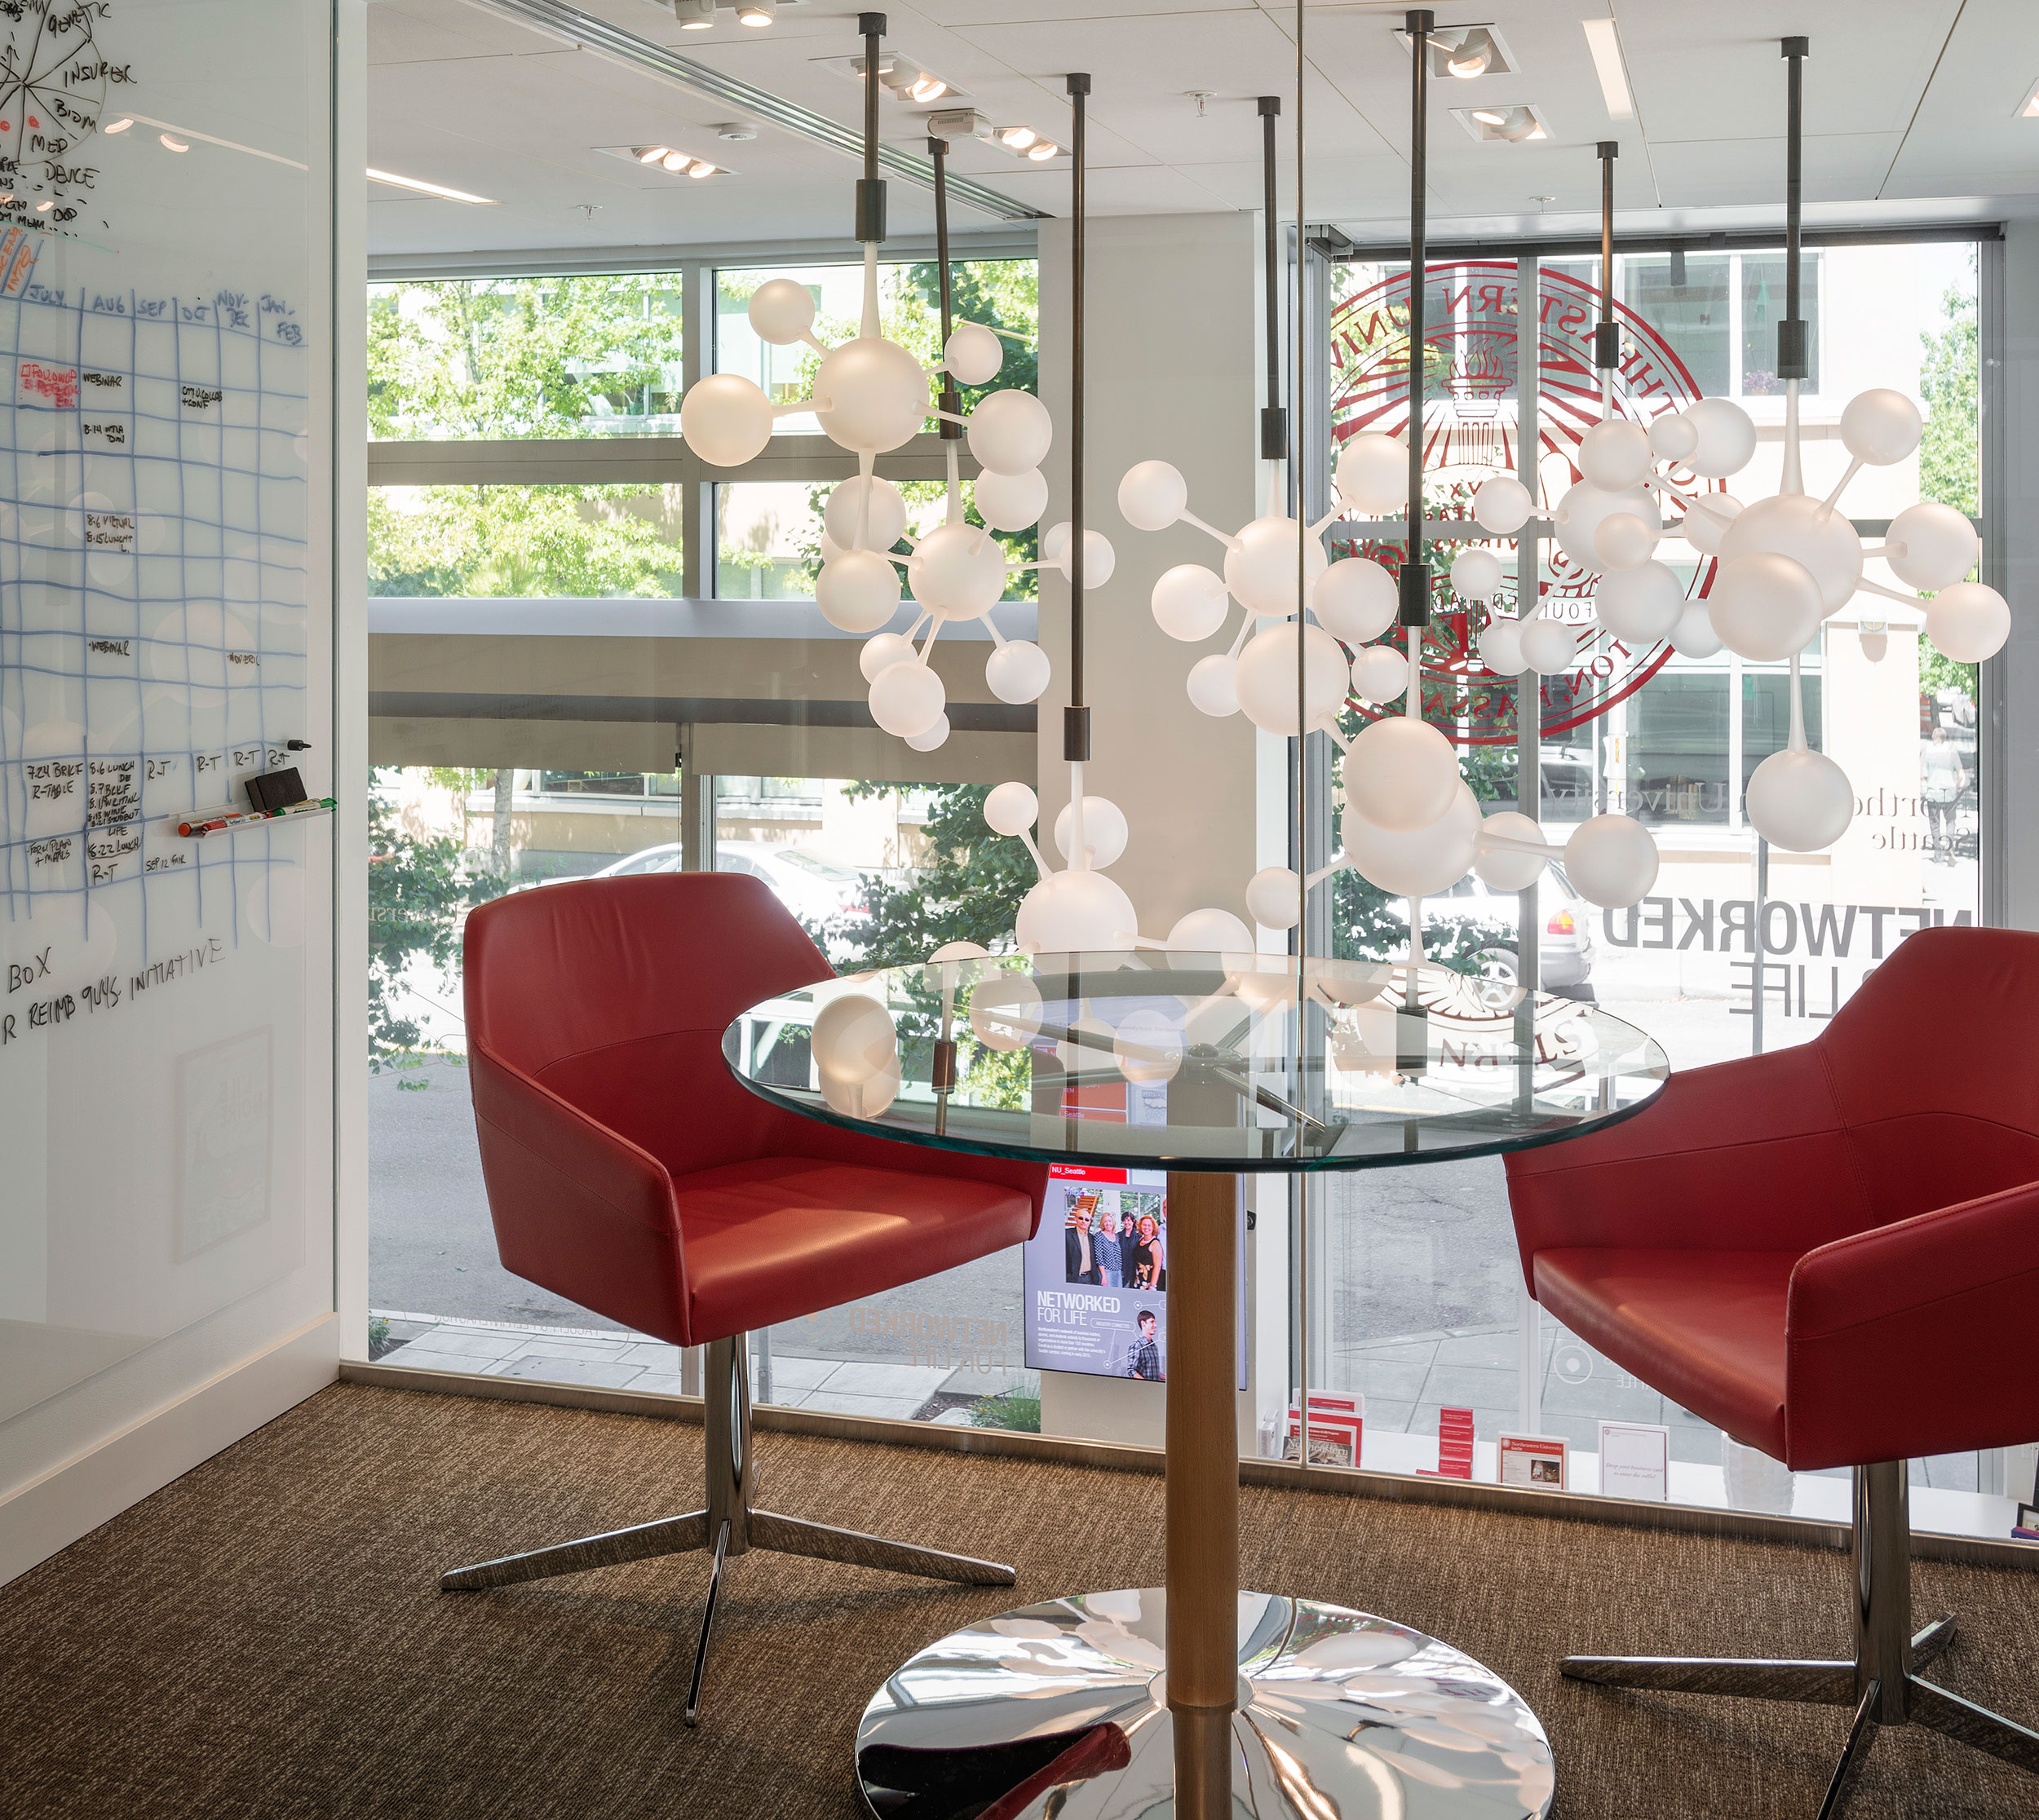 Canlis Glass | Seattle Glass Artist | Connectivity Installation